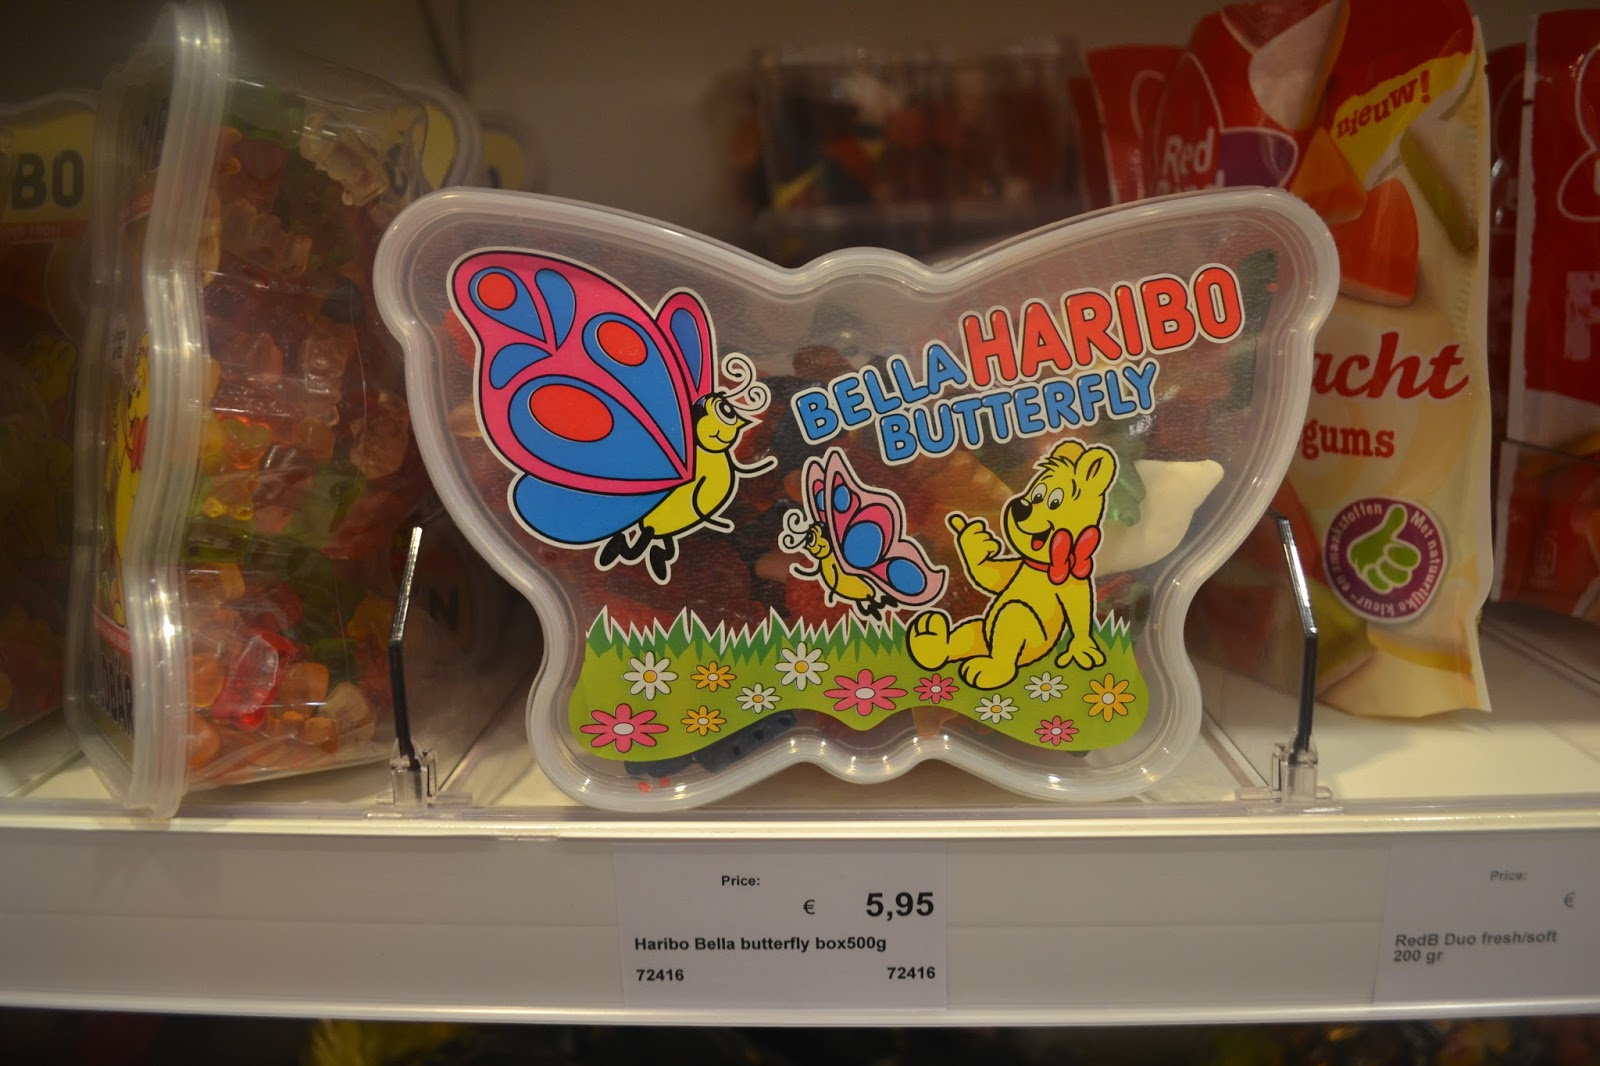 Haribo in Butterfly Shaped Pack